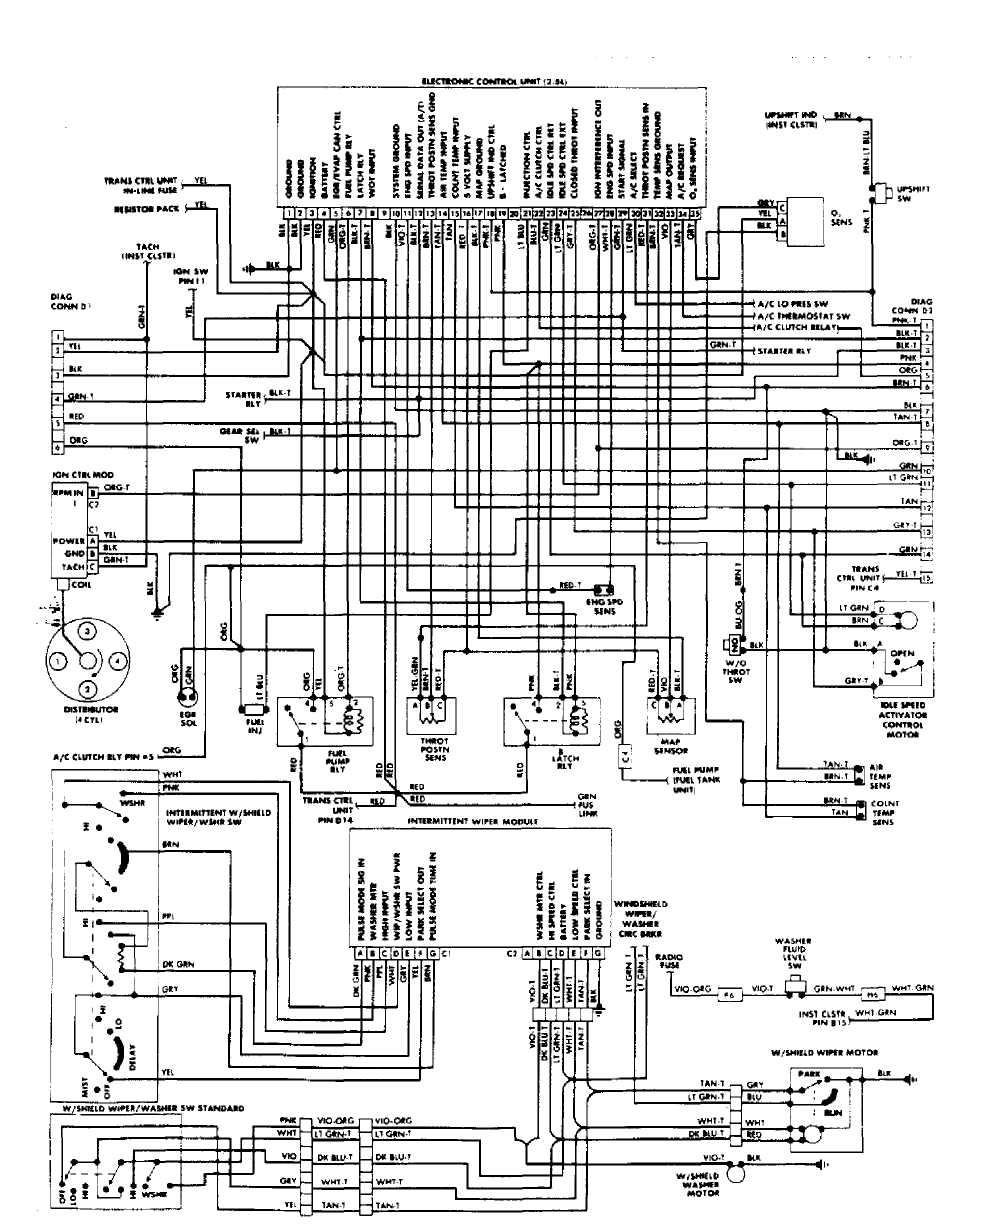 fuel injection system - tbi :: 1984 - 1991 :: jeep ... 1991 jeep comanche wiring diagram 1991 jeep comanche tail light wiring diagram